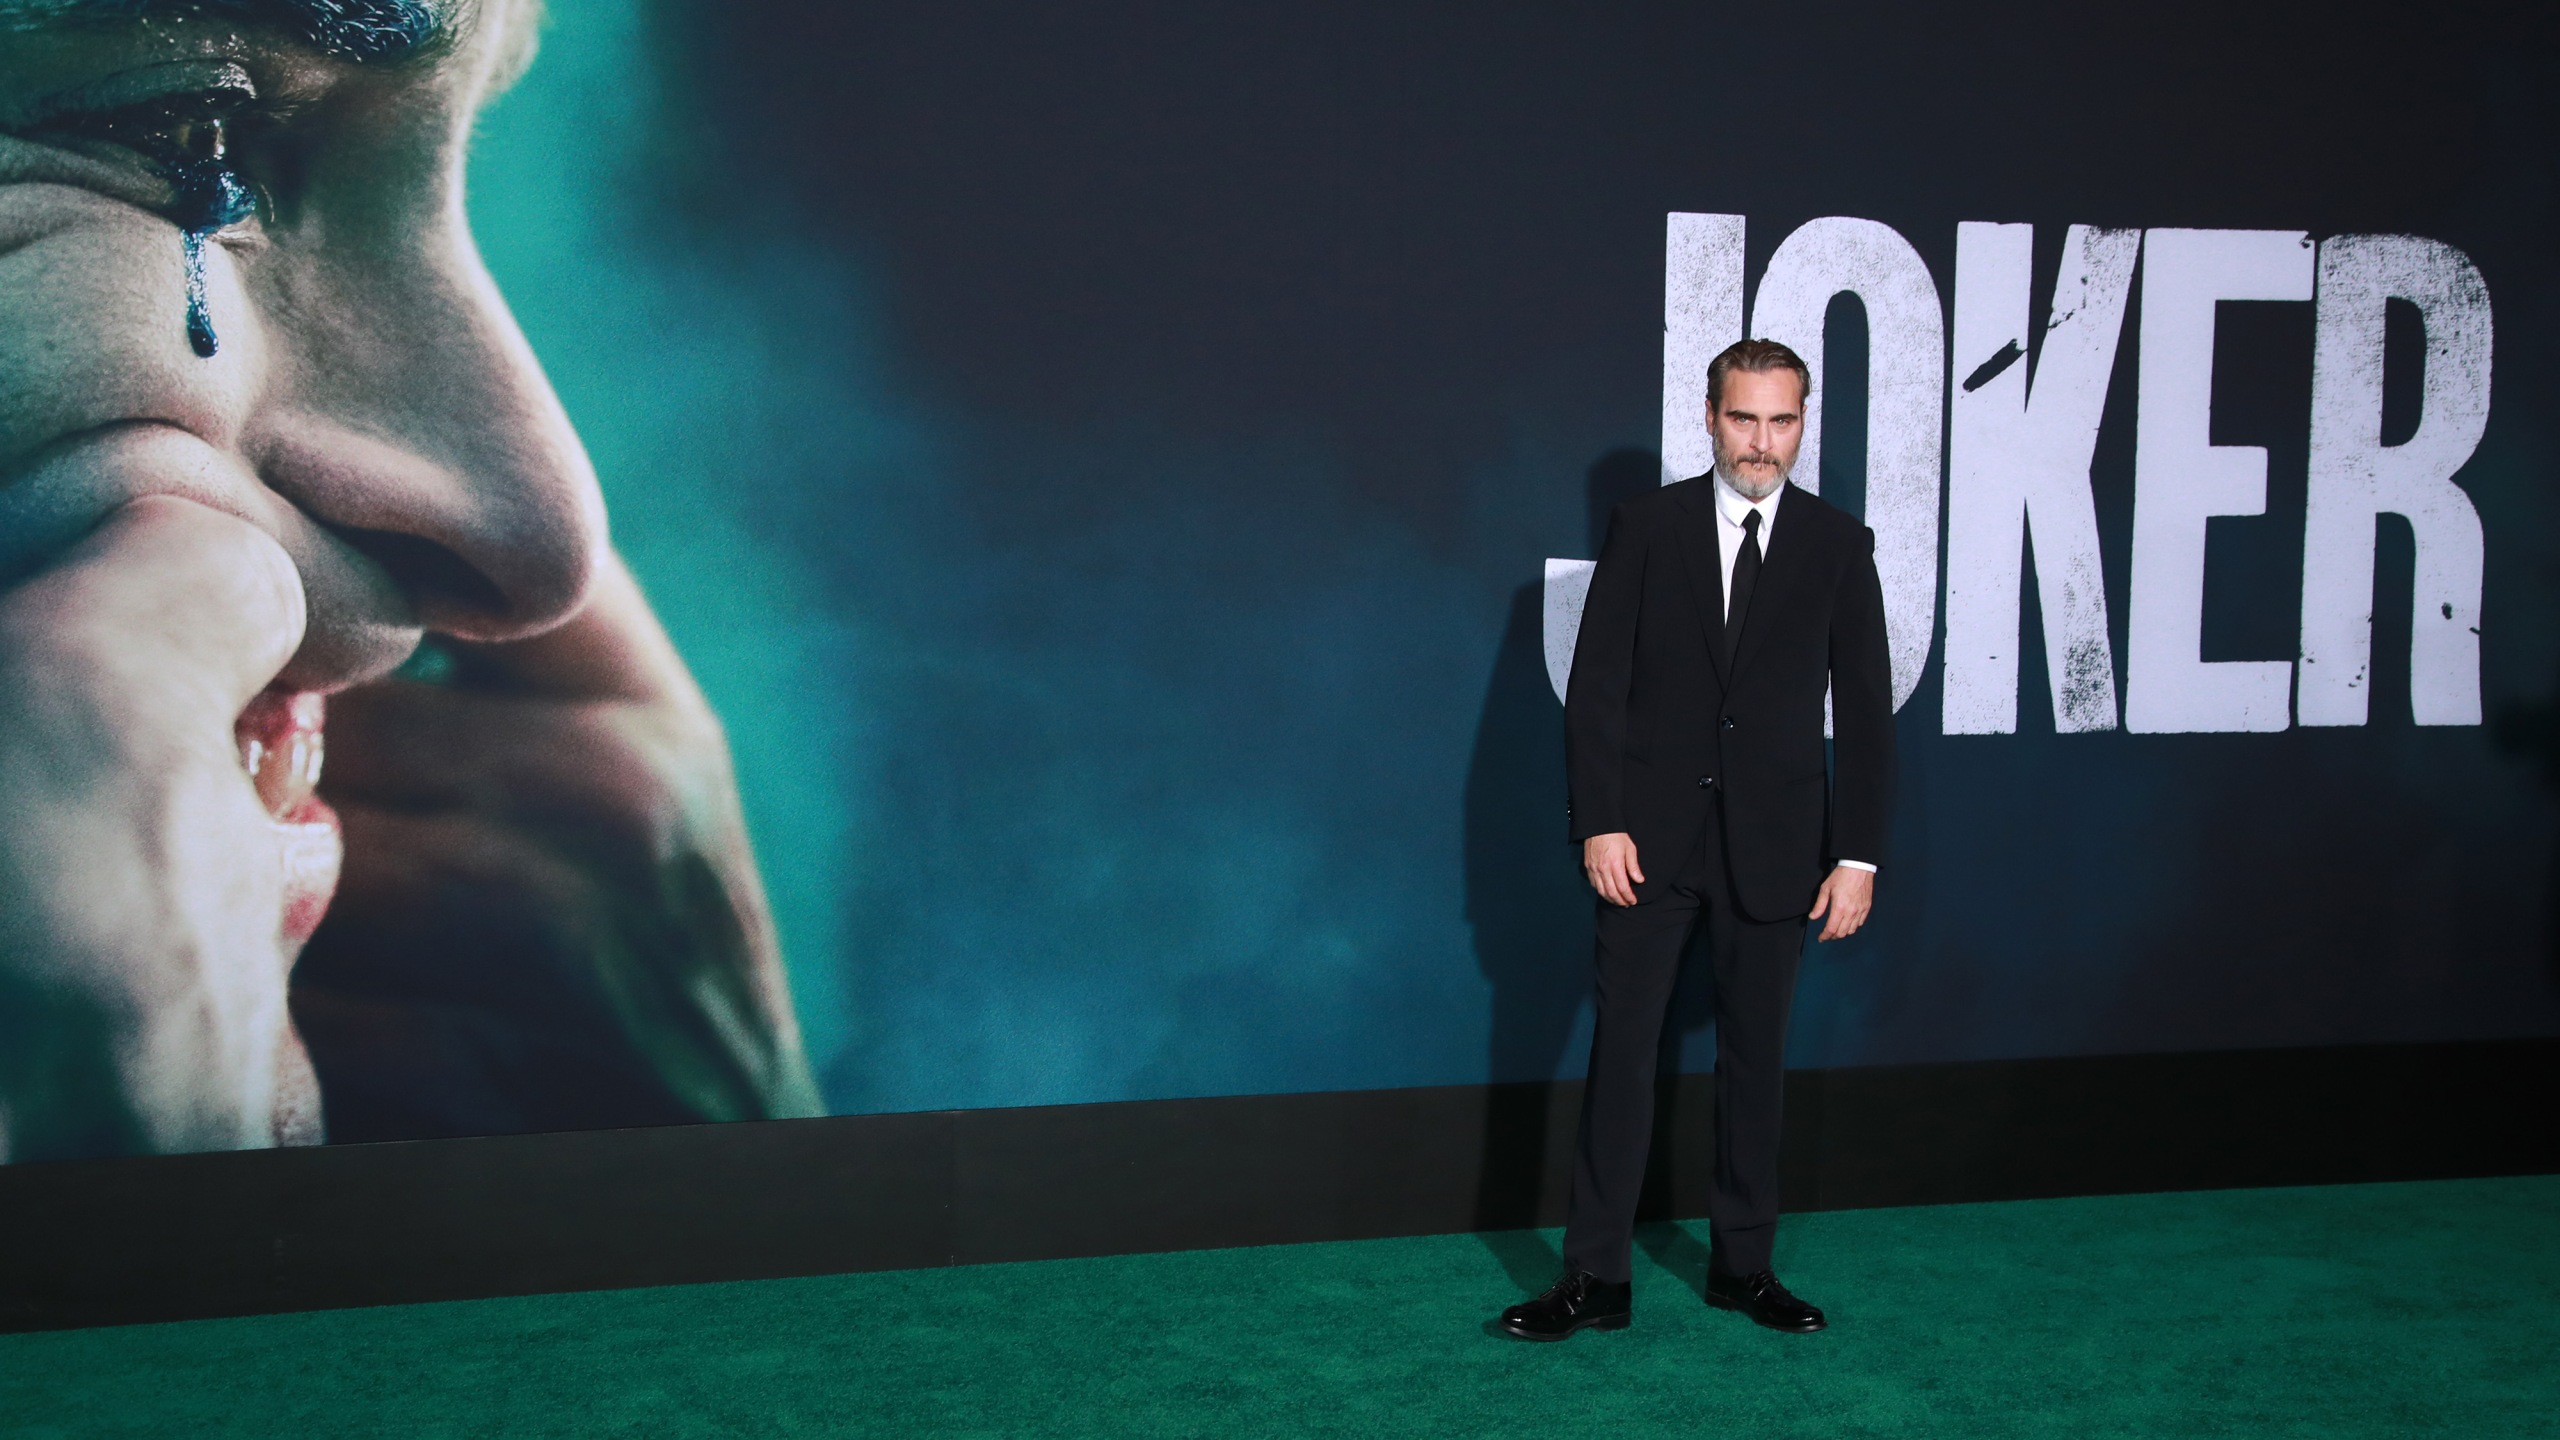 """Joaquin Phoenix attends the premiere of Warner Bros Pictures """"Joker"""" on Sept. 28, 2019 at the ArcLight Cinemas in Hollywood. (Credit: Rich Fury/Getty Images)"""